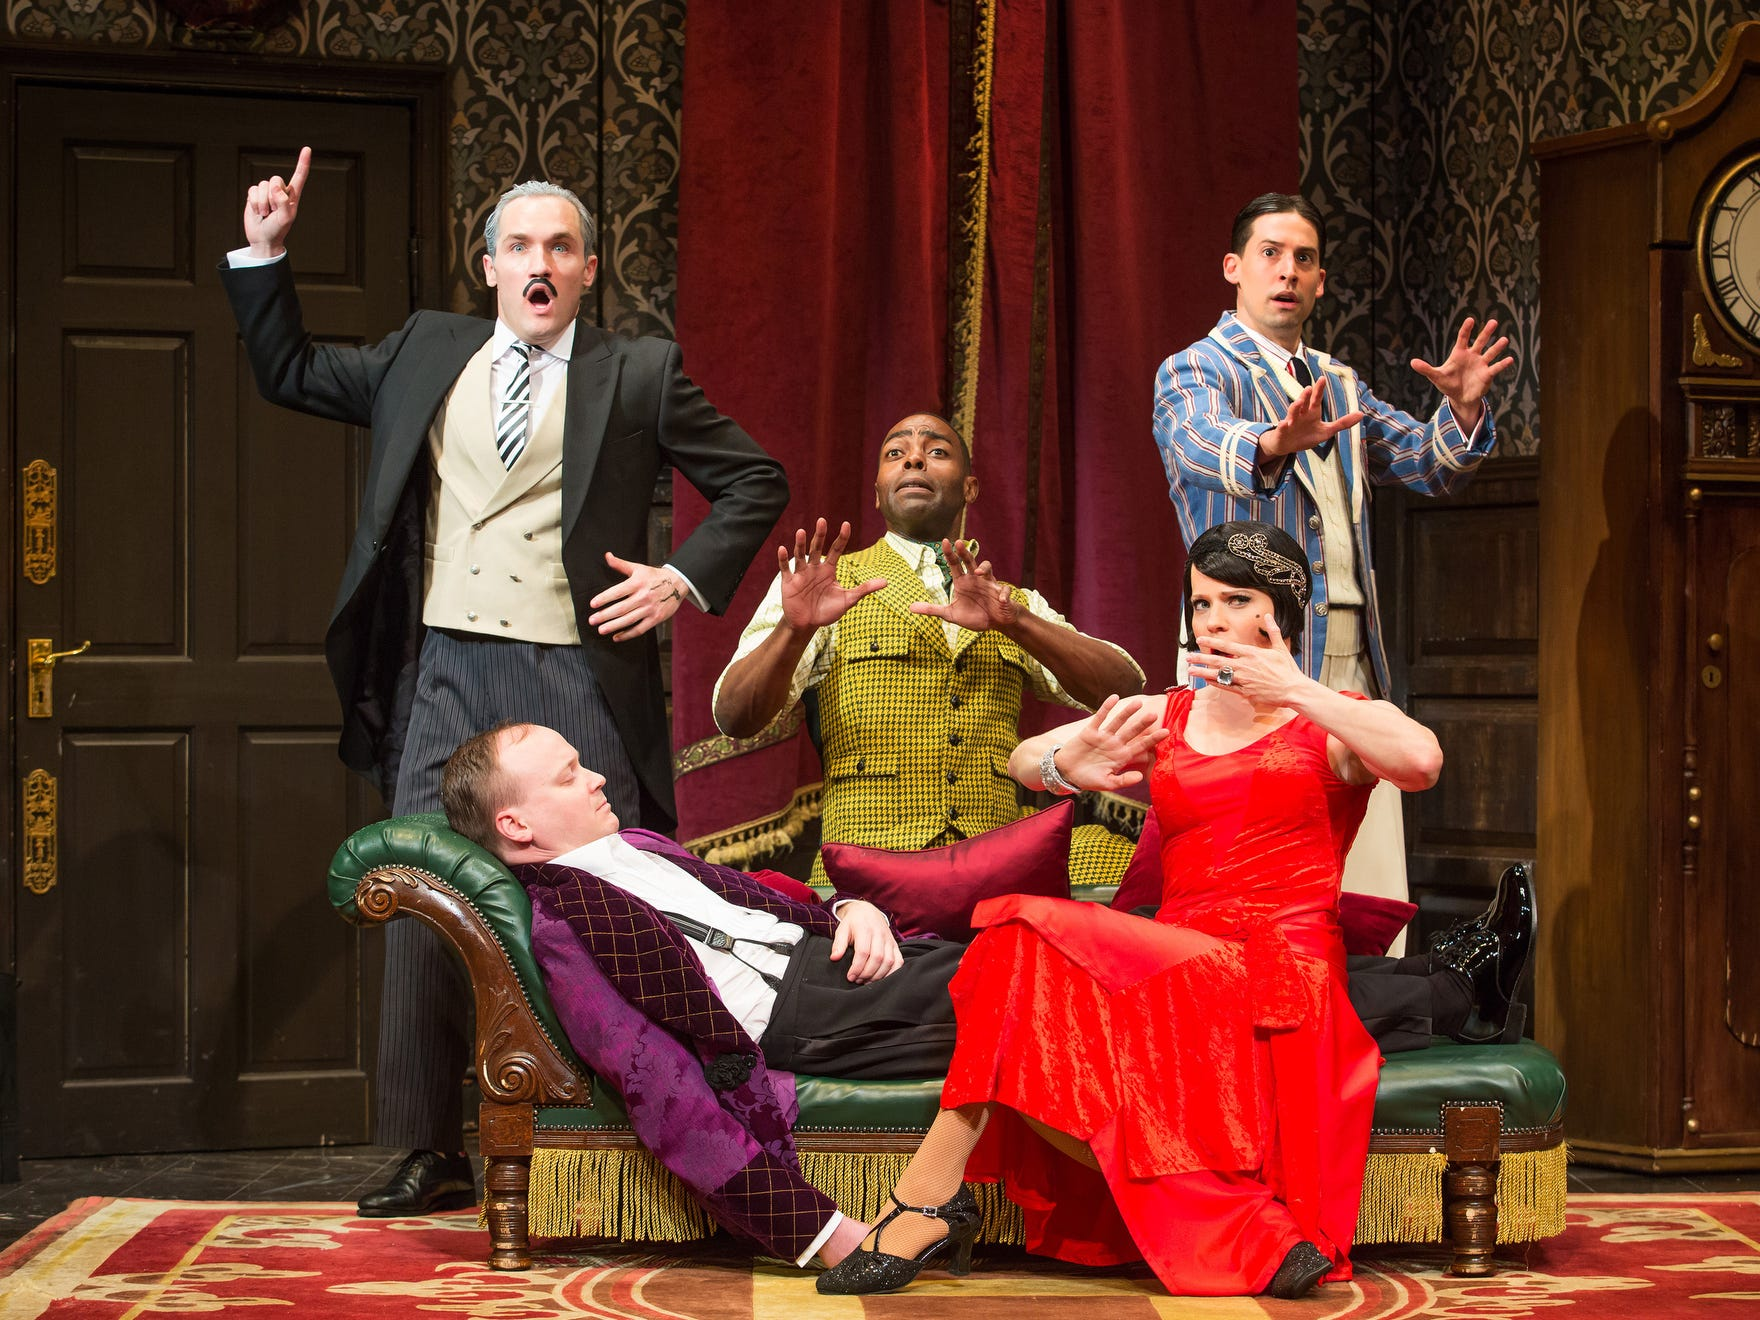 OCT. 9